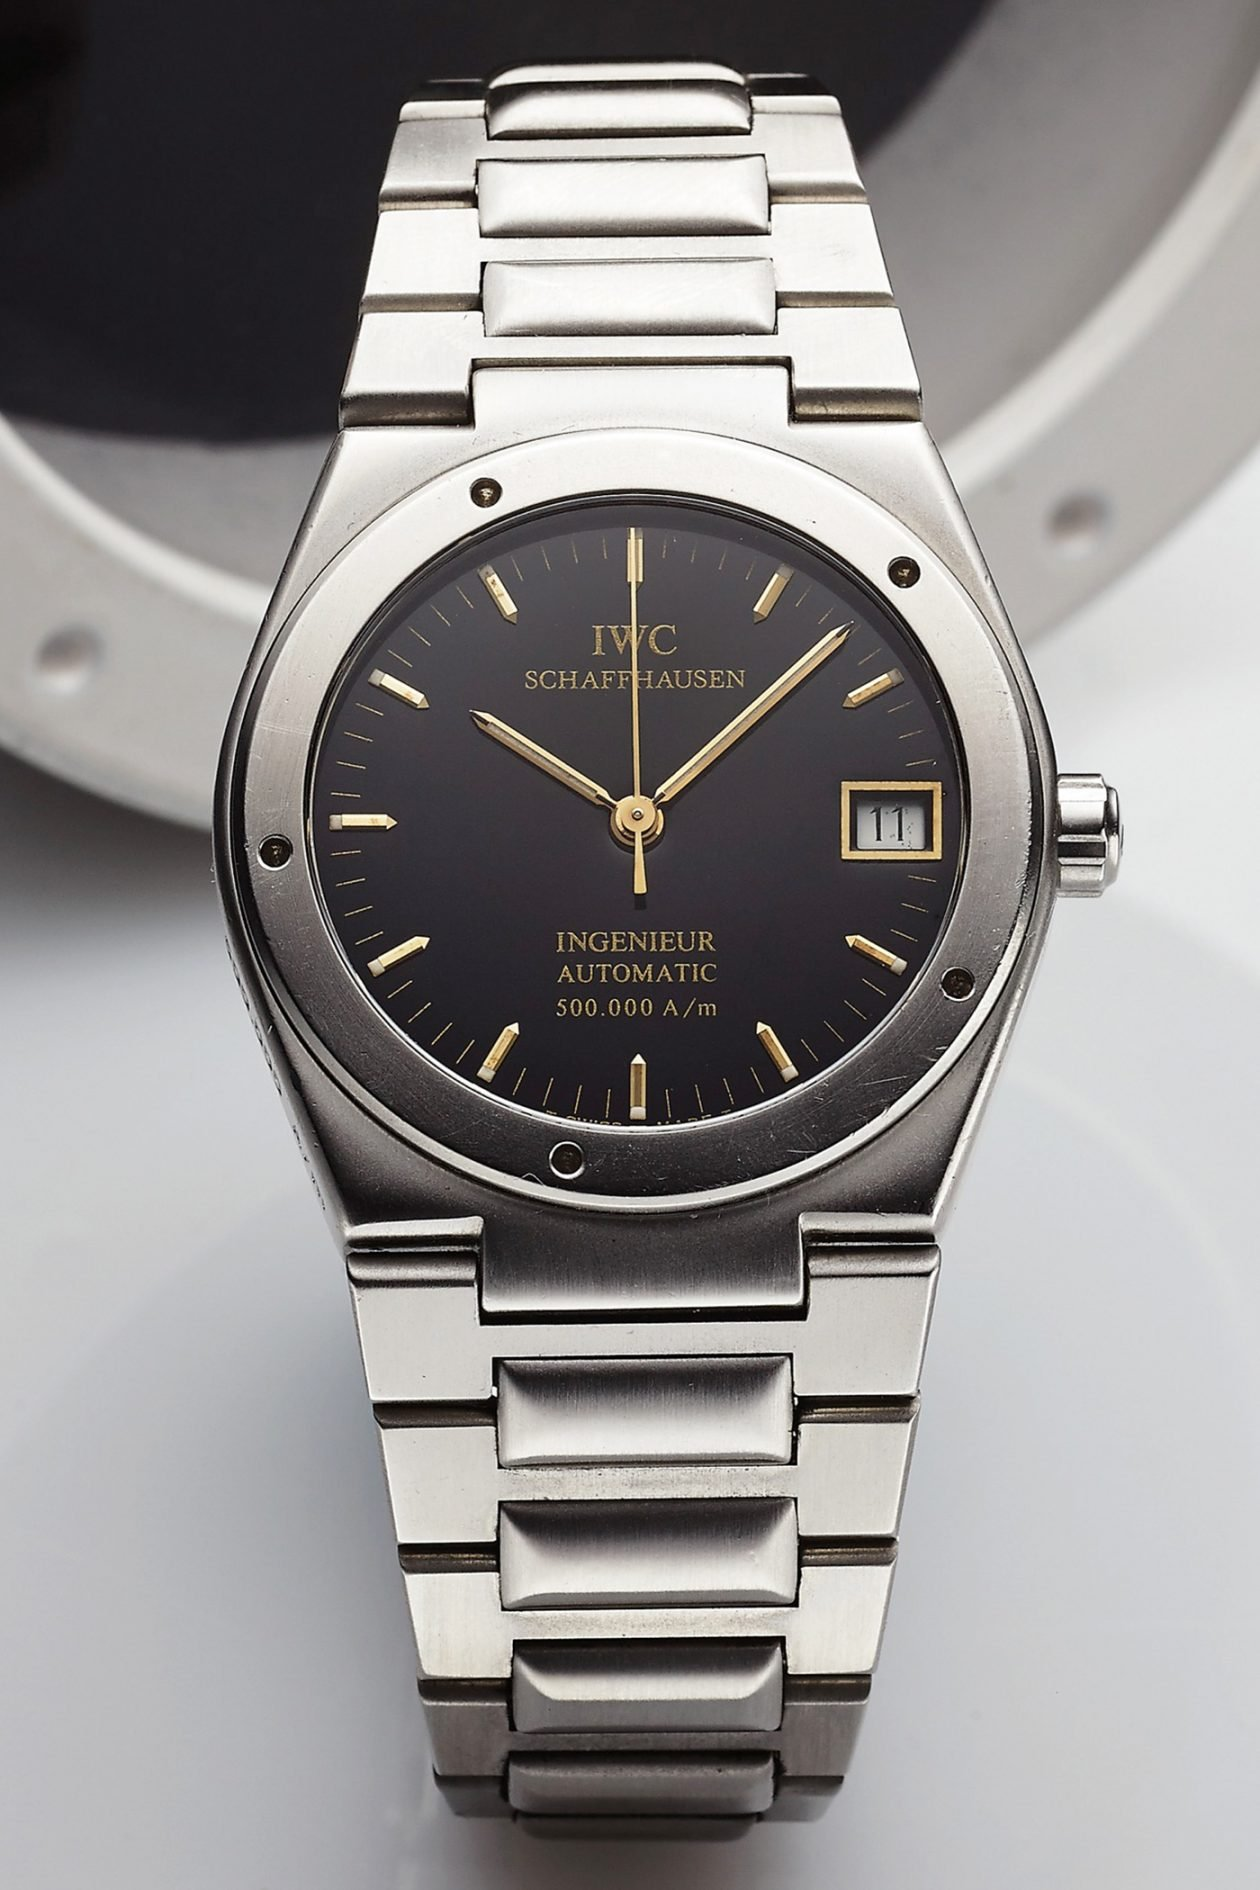 IWC Ingenieur Ref. 3508 / foto: Antiquorum